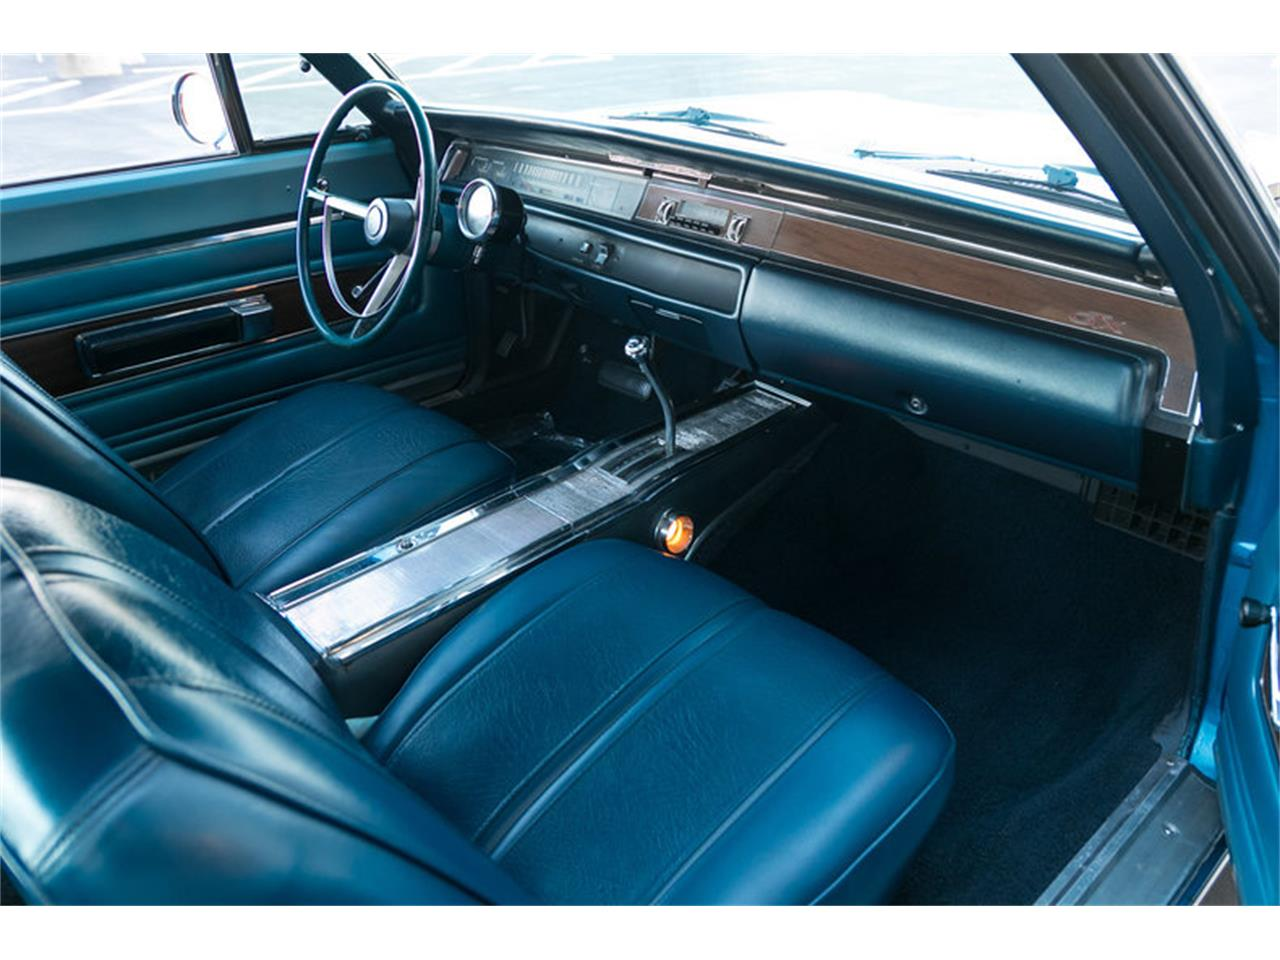 Large Picture of 1968 Plymouth GTX located in St. Charles Missouri Offered by Fast Lane Classic Cars Inc. - MZFL